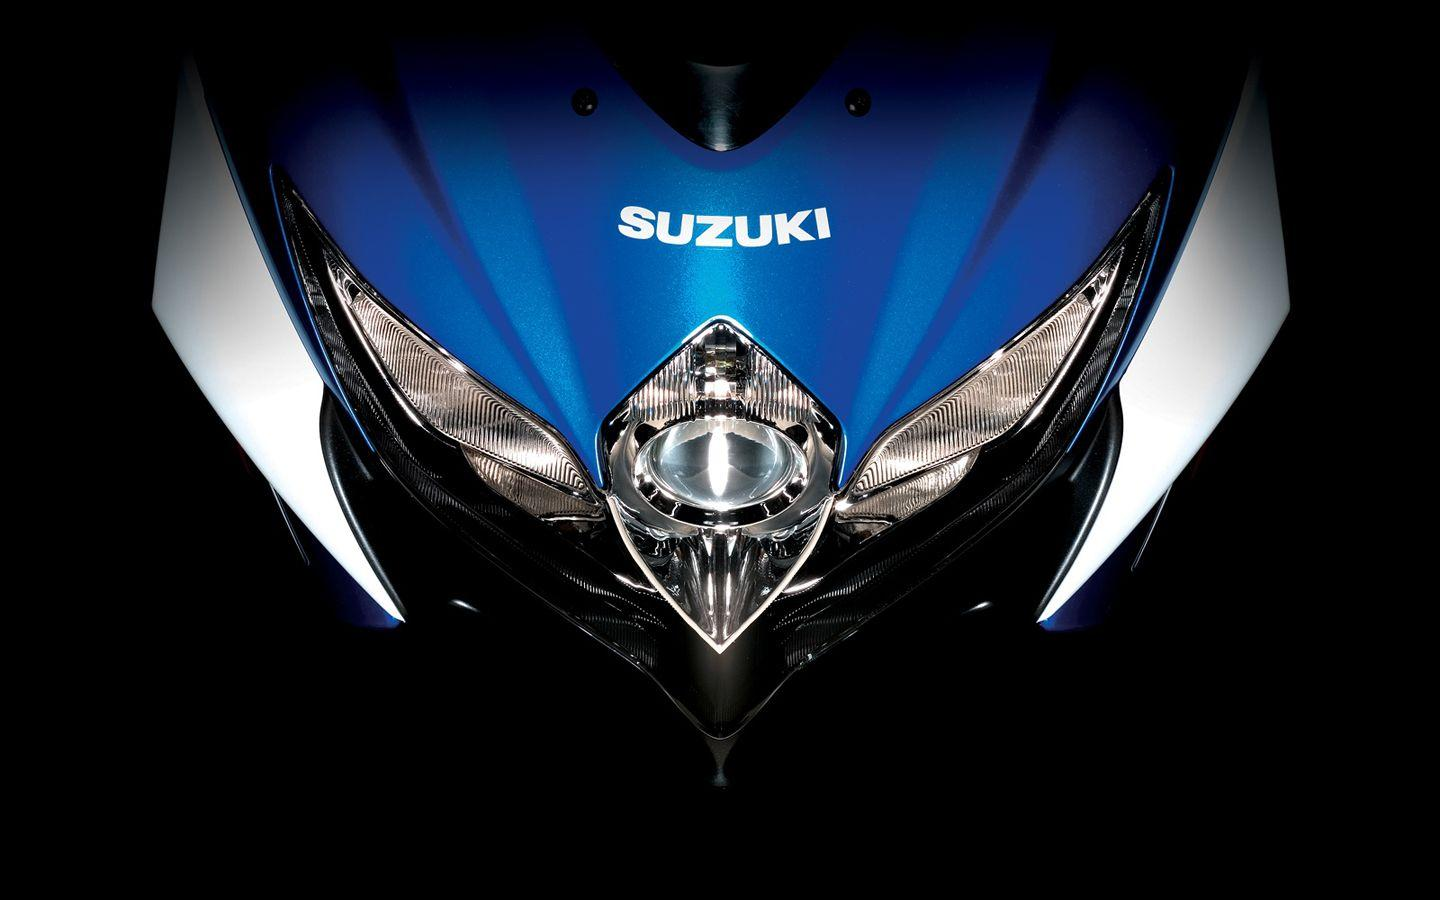 Download the GSXR Face Wallpaper, GSXR Face iPhone Wallpaper, GSXR